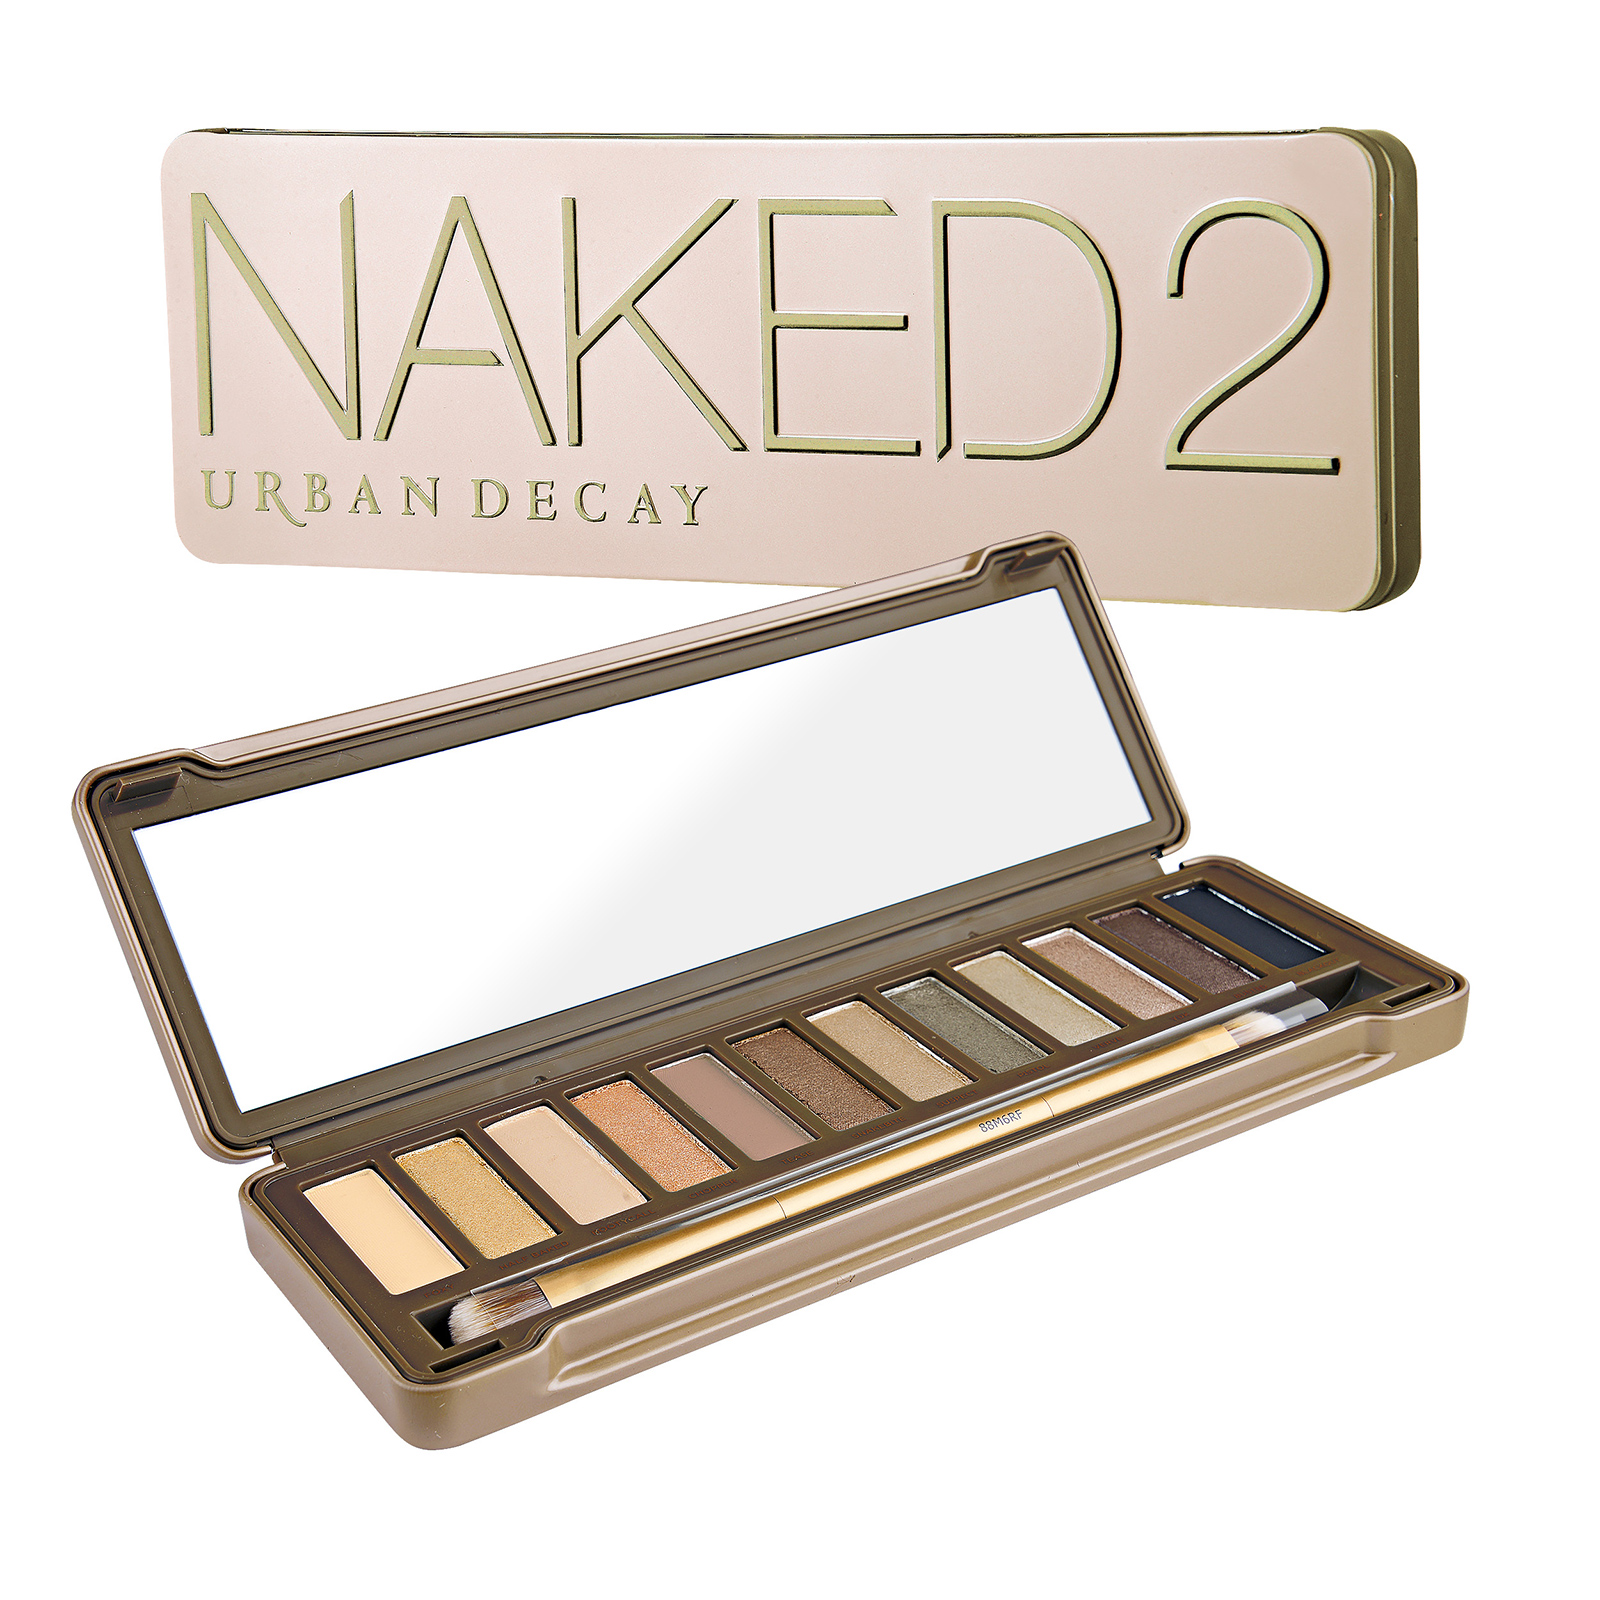 Urban Decay  Naked2 Eyeshadow Palette 1box, from Cosme-De.com